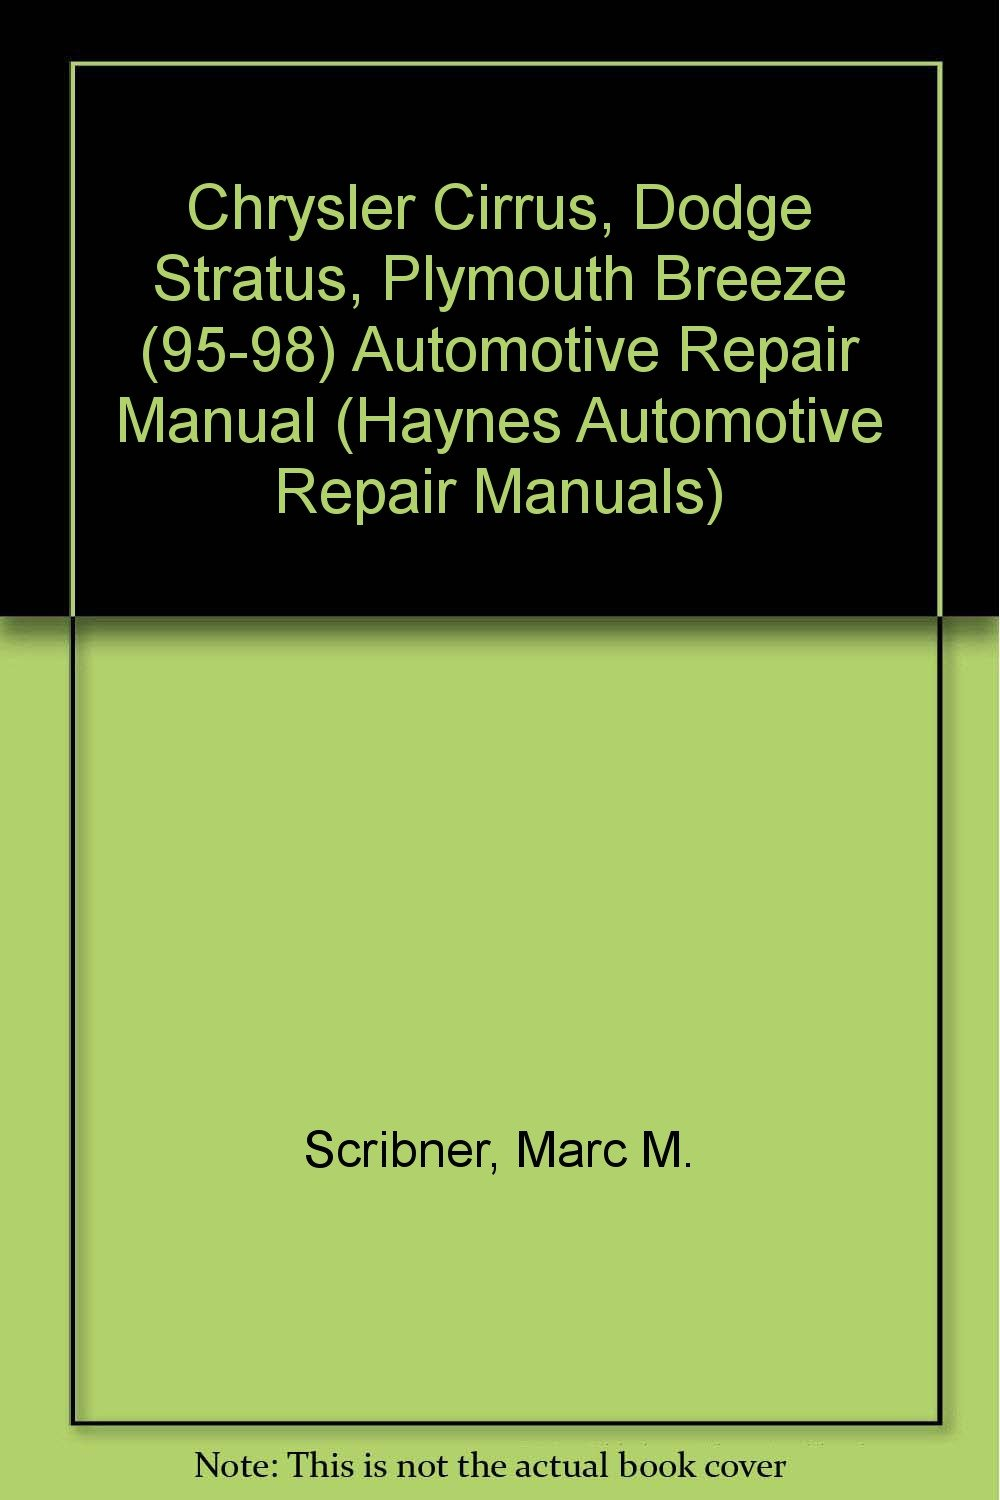 Chrysler Cirrus, Dodge Stratus, Plymouth Breeze Automotive Repair Manual: Models  Covered: Chrysler Cirrus, Dodge Stratus and Plymouth Breeze 1995 Through ...